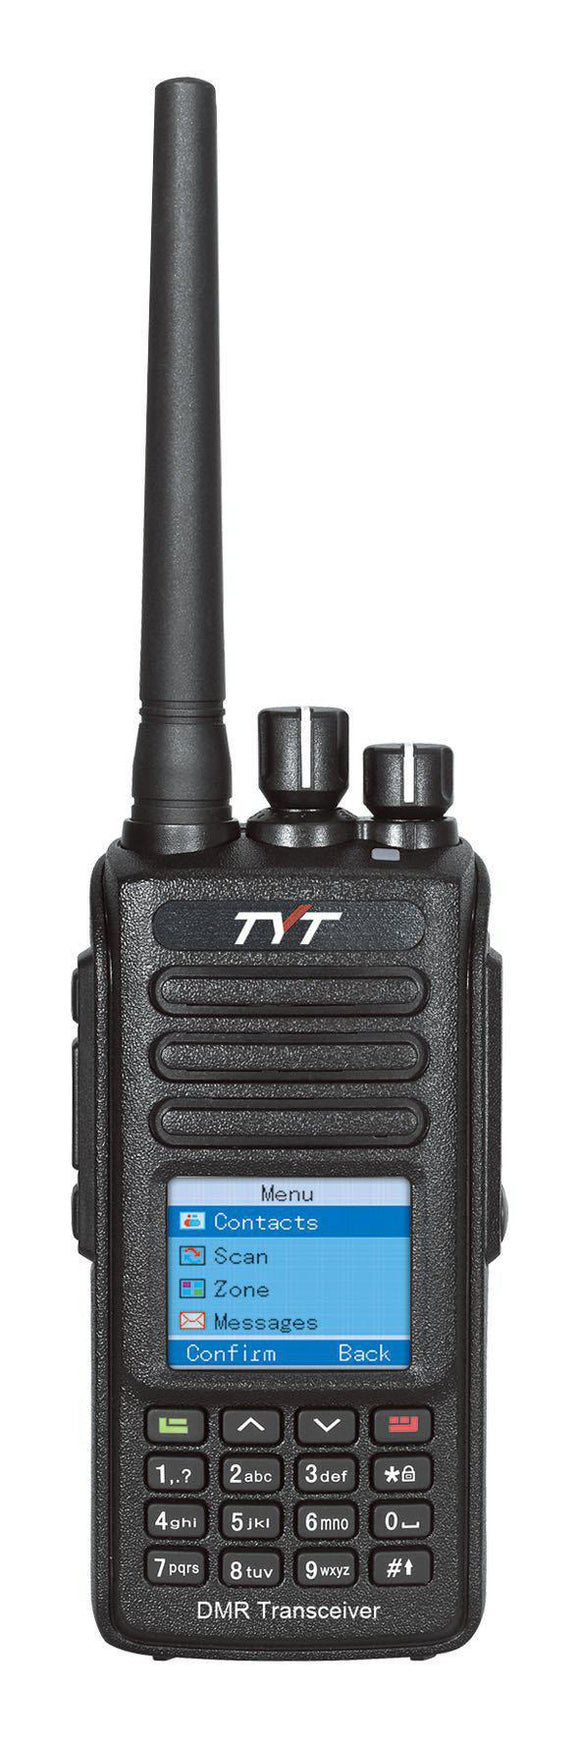 TYT Tytera MD-390, whats new and different? And now the Wouxun KG-D901 DMR Amateur Ham Radio-Fleetwood Digital